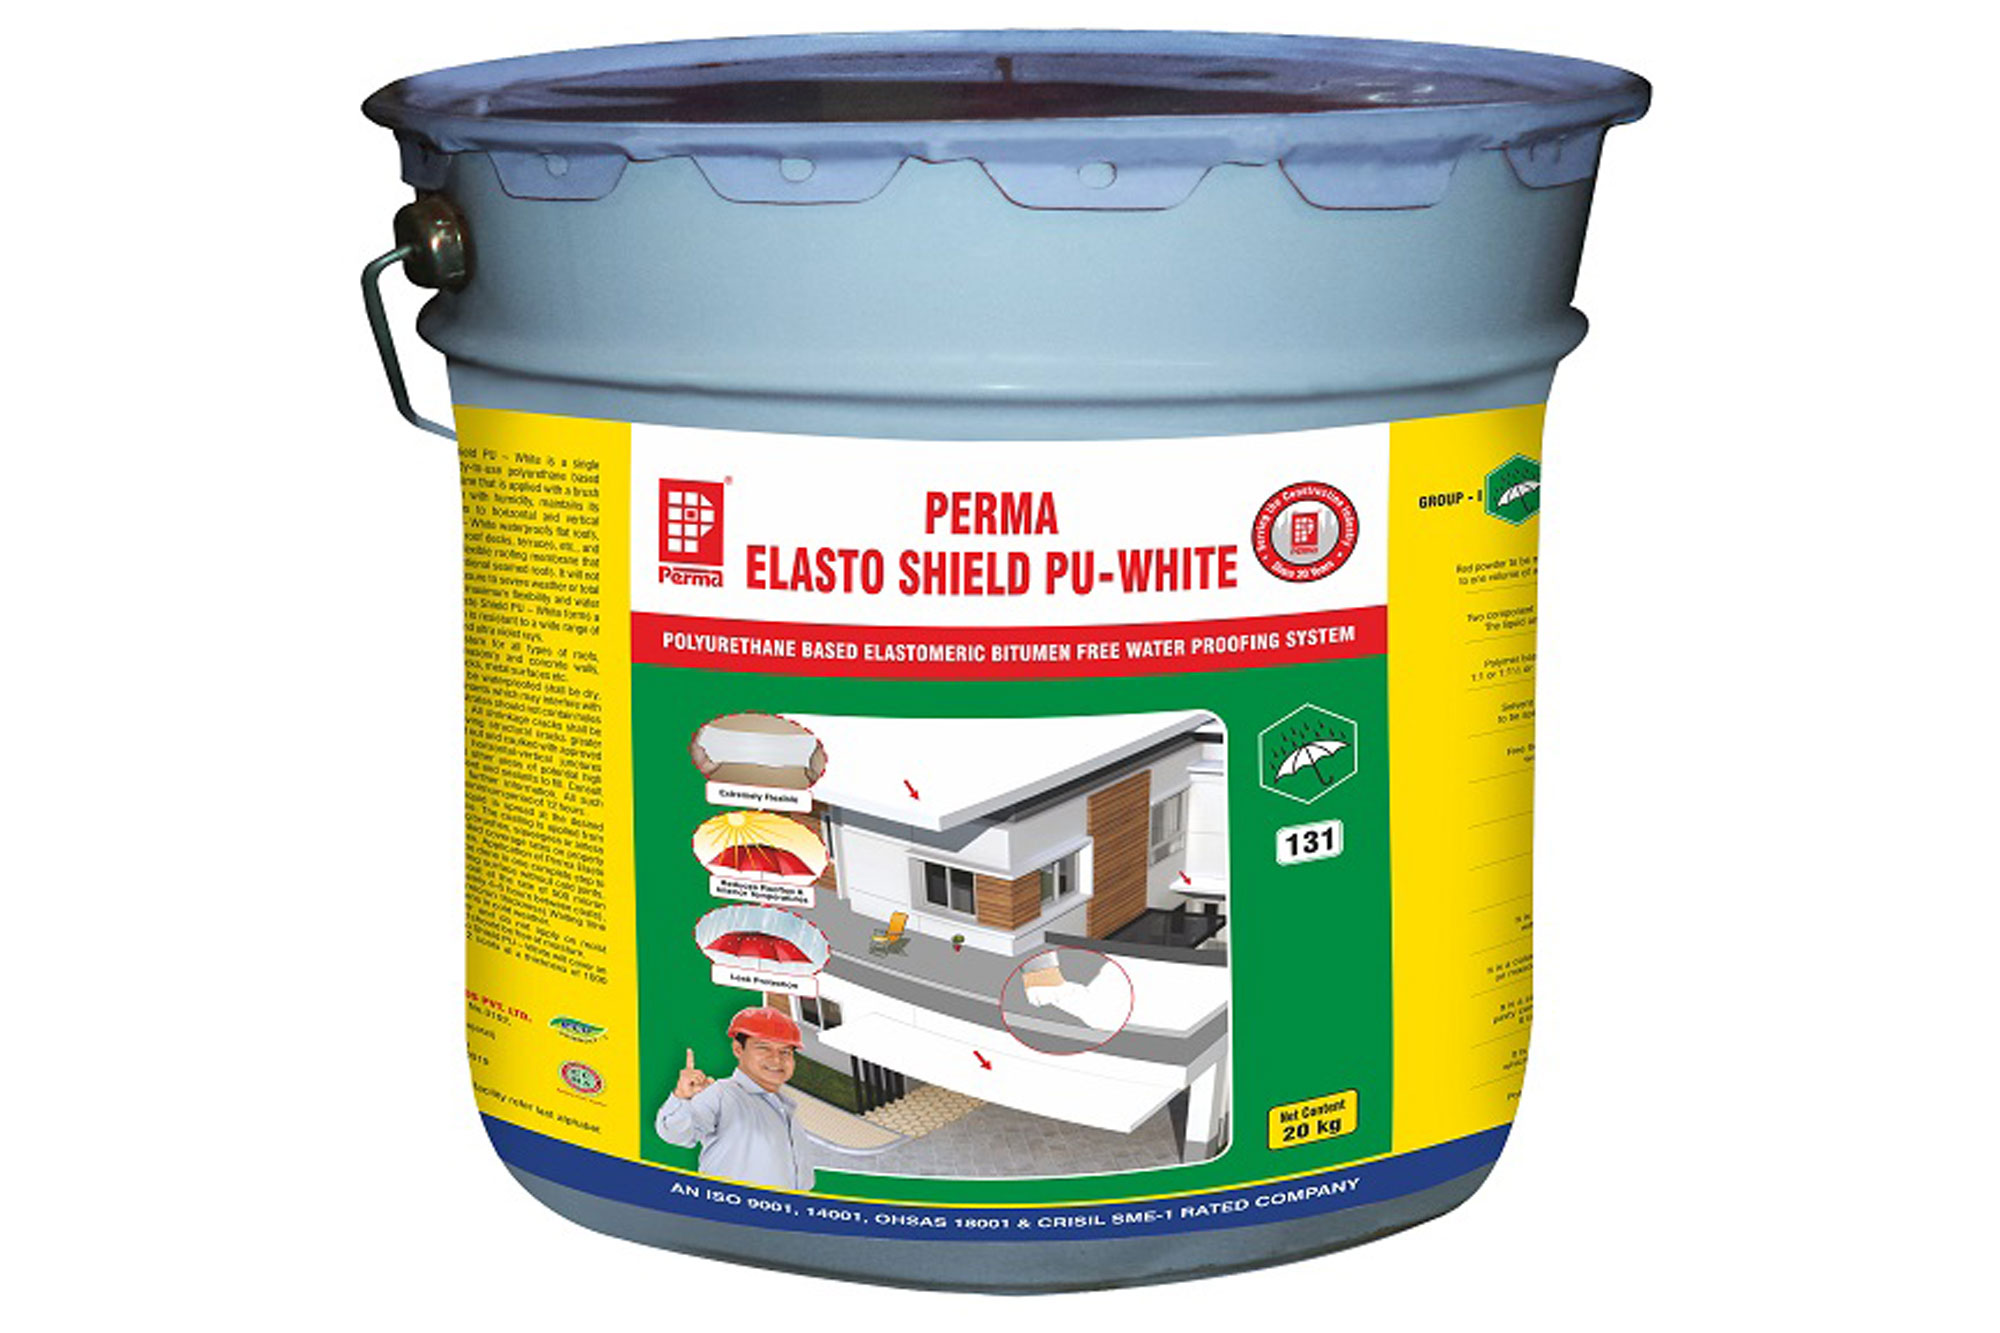 Perma Construction: providing solutions for waterproofing